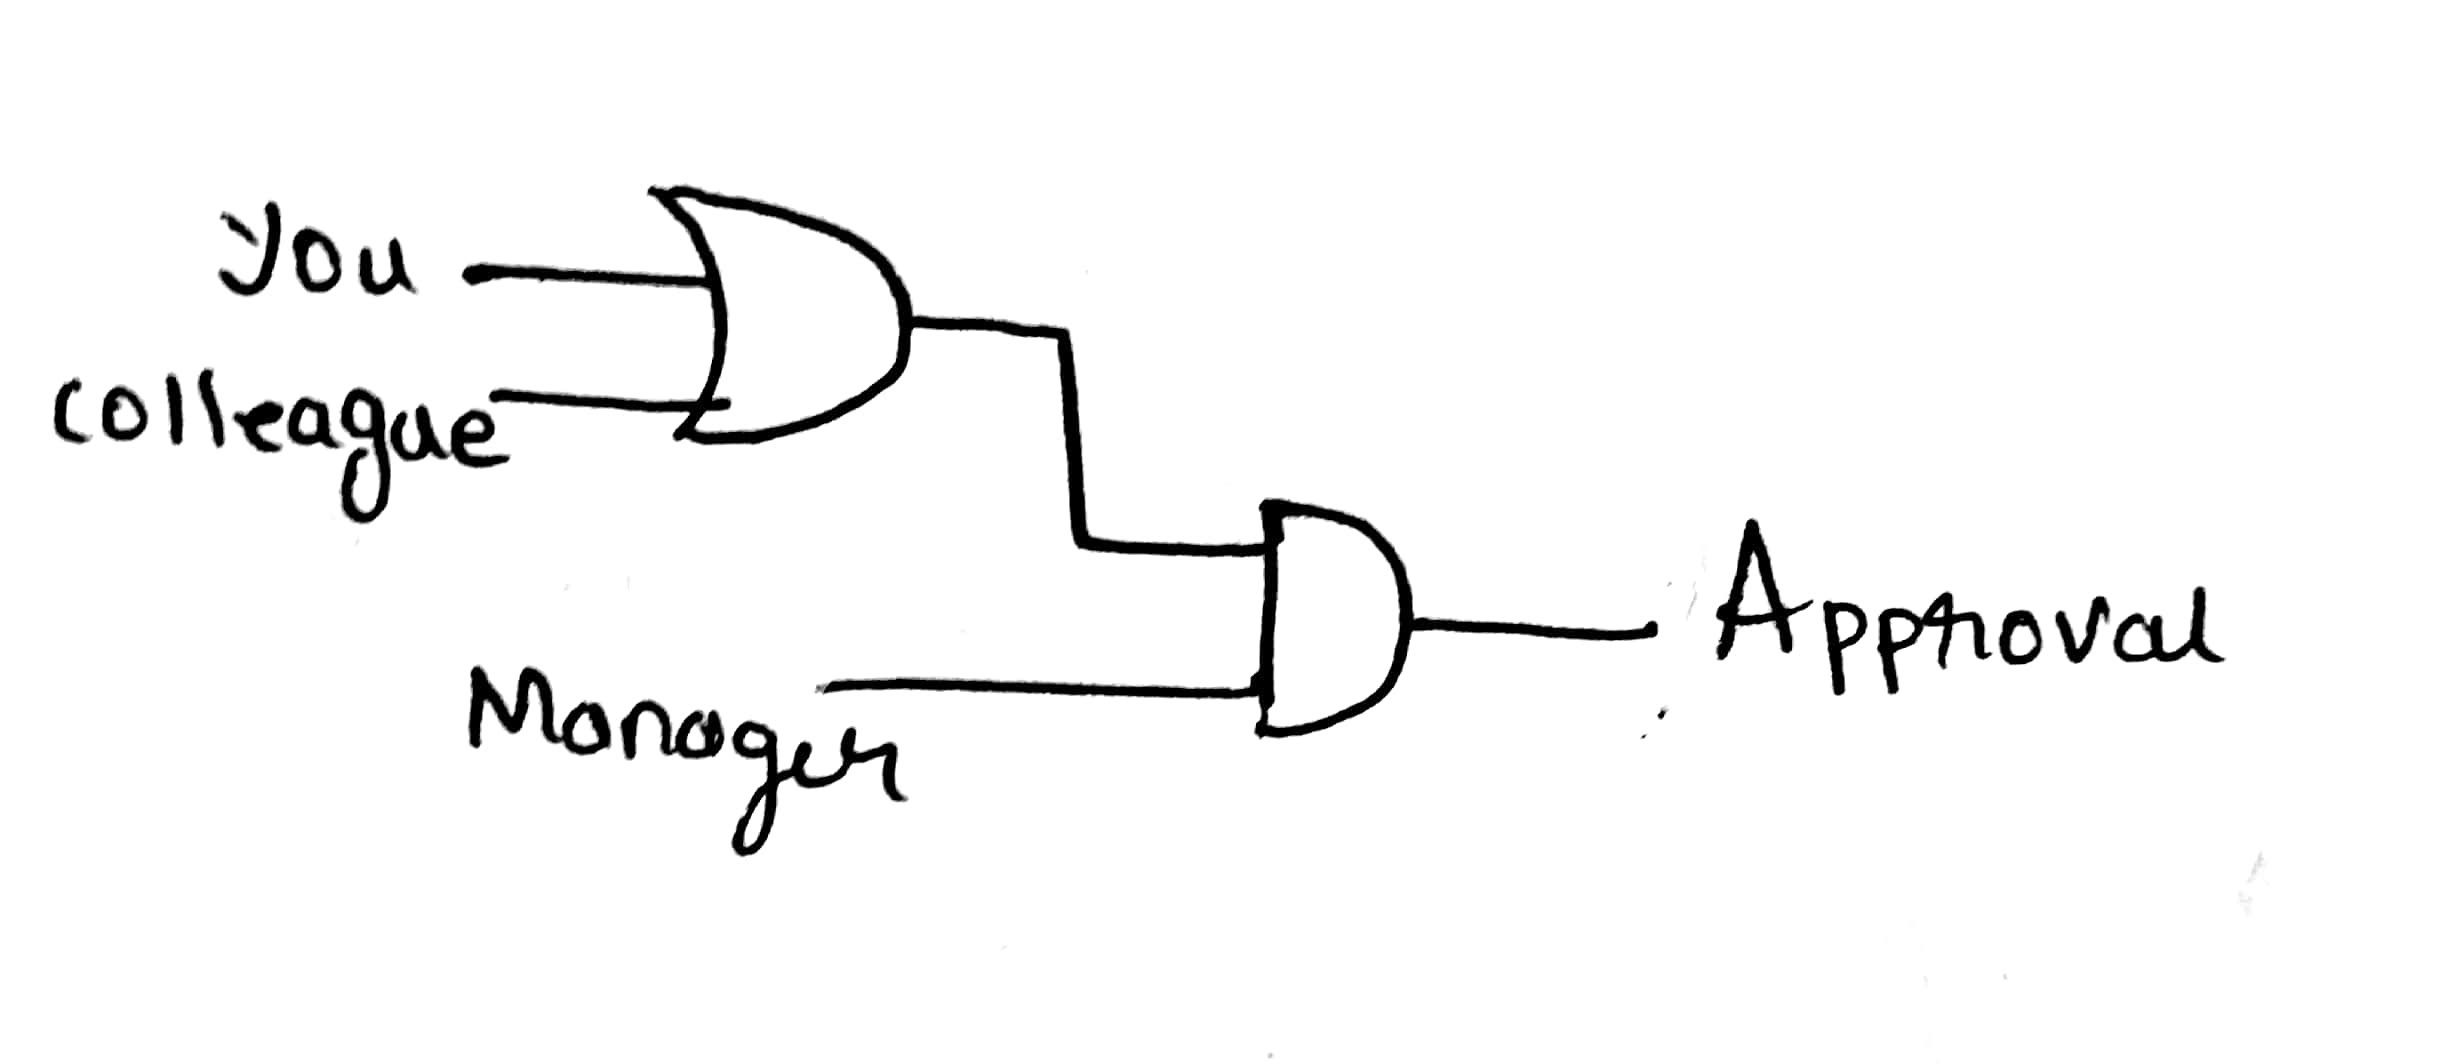 What Are The Practical Applications Of Logic Gates Quora How To Make A Diagram Do You Design Circuit For This